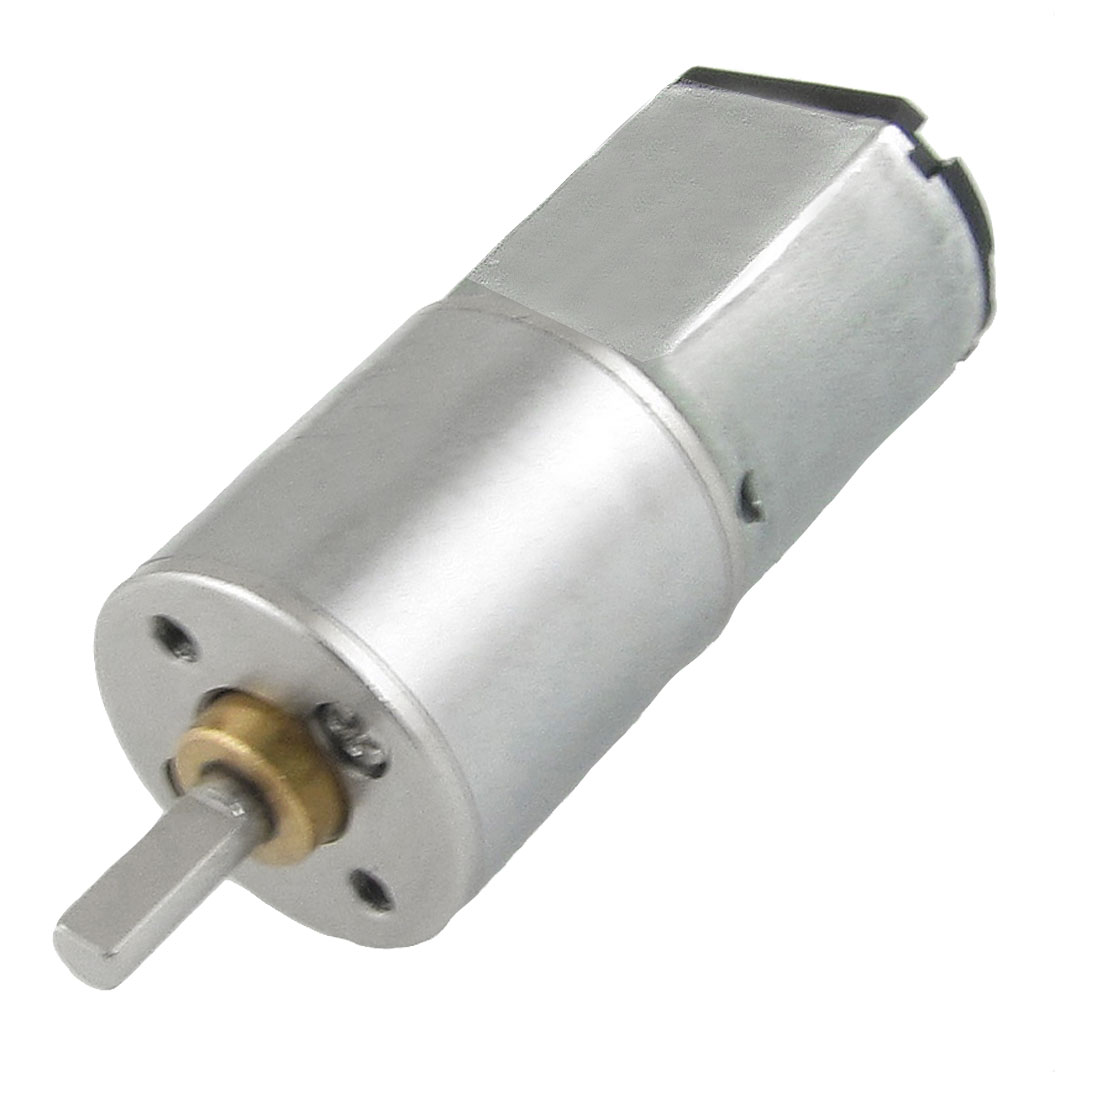 Electric Speed Reducing Metal DC Geared Motor 6V 30RPM 0.3A